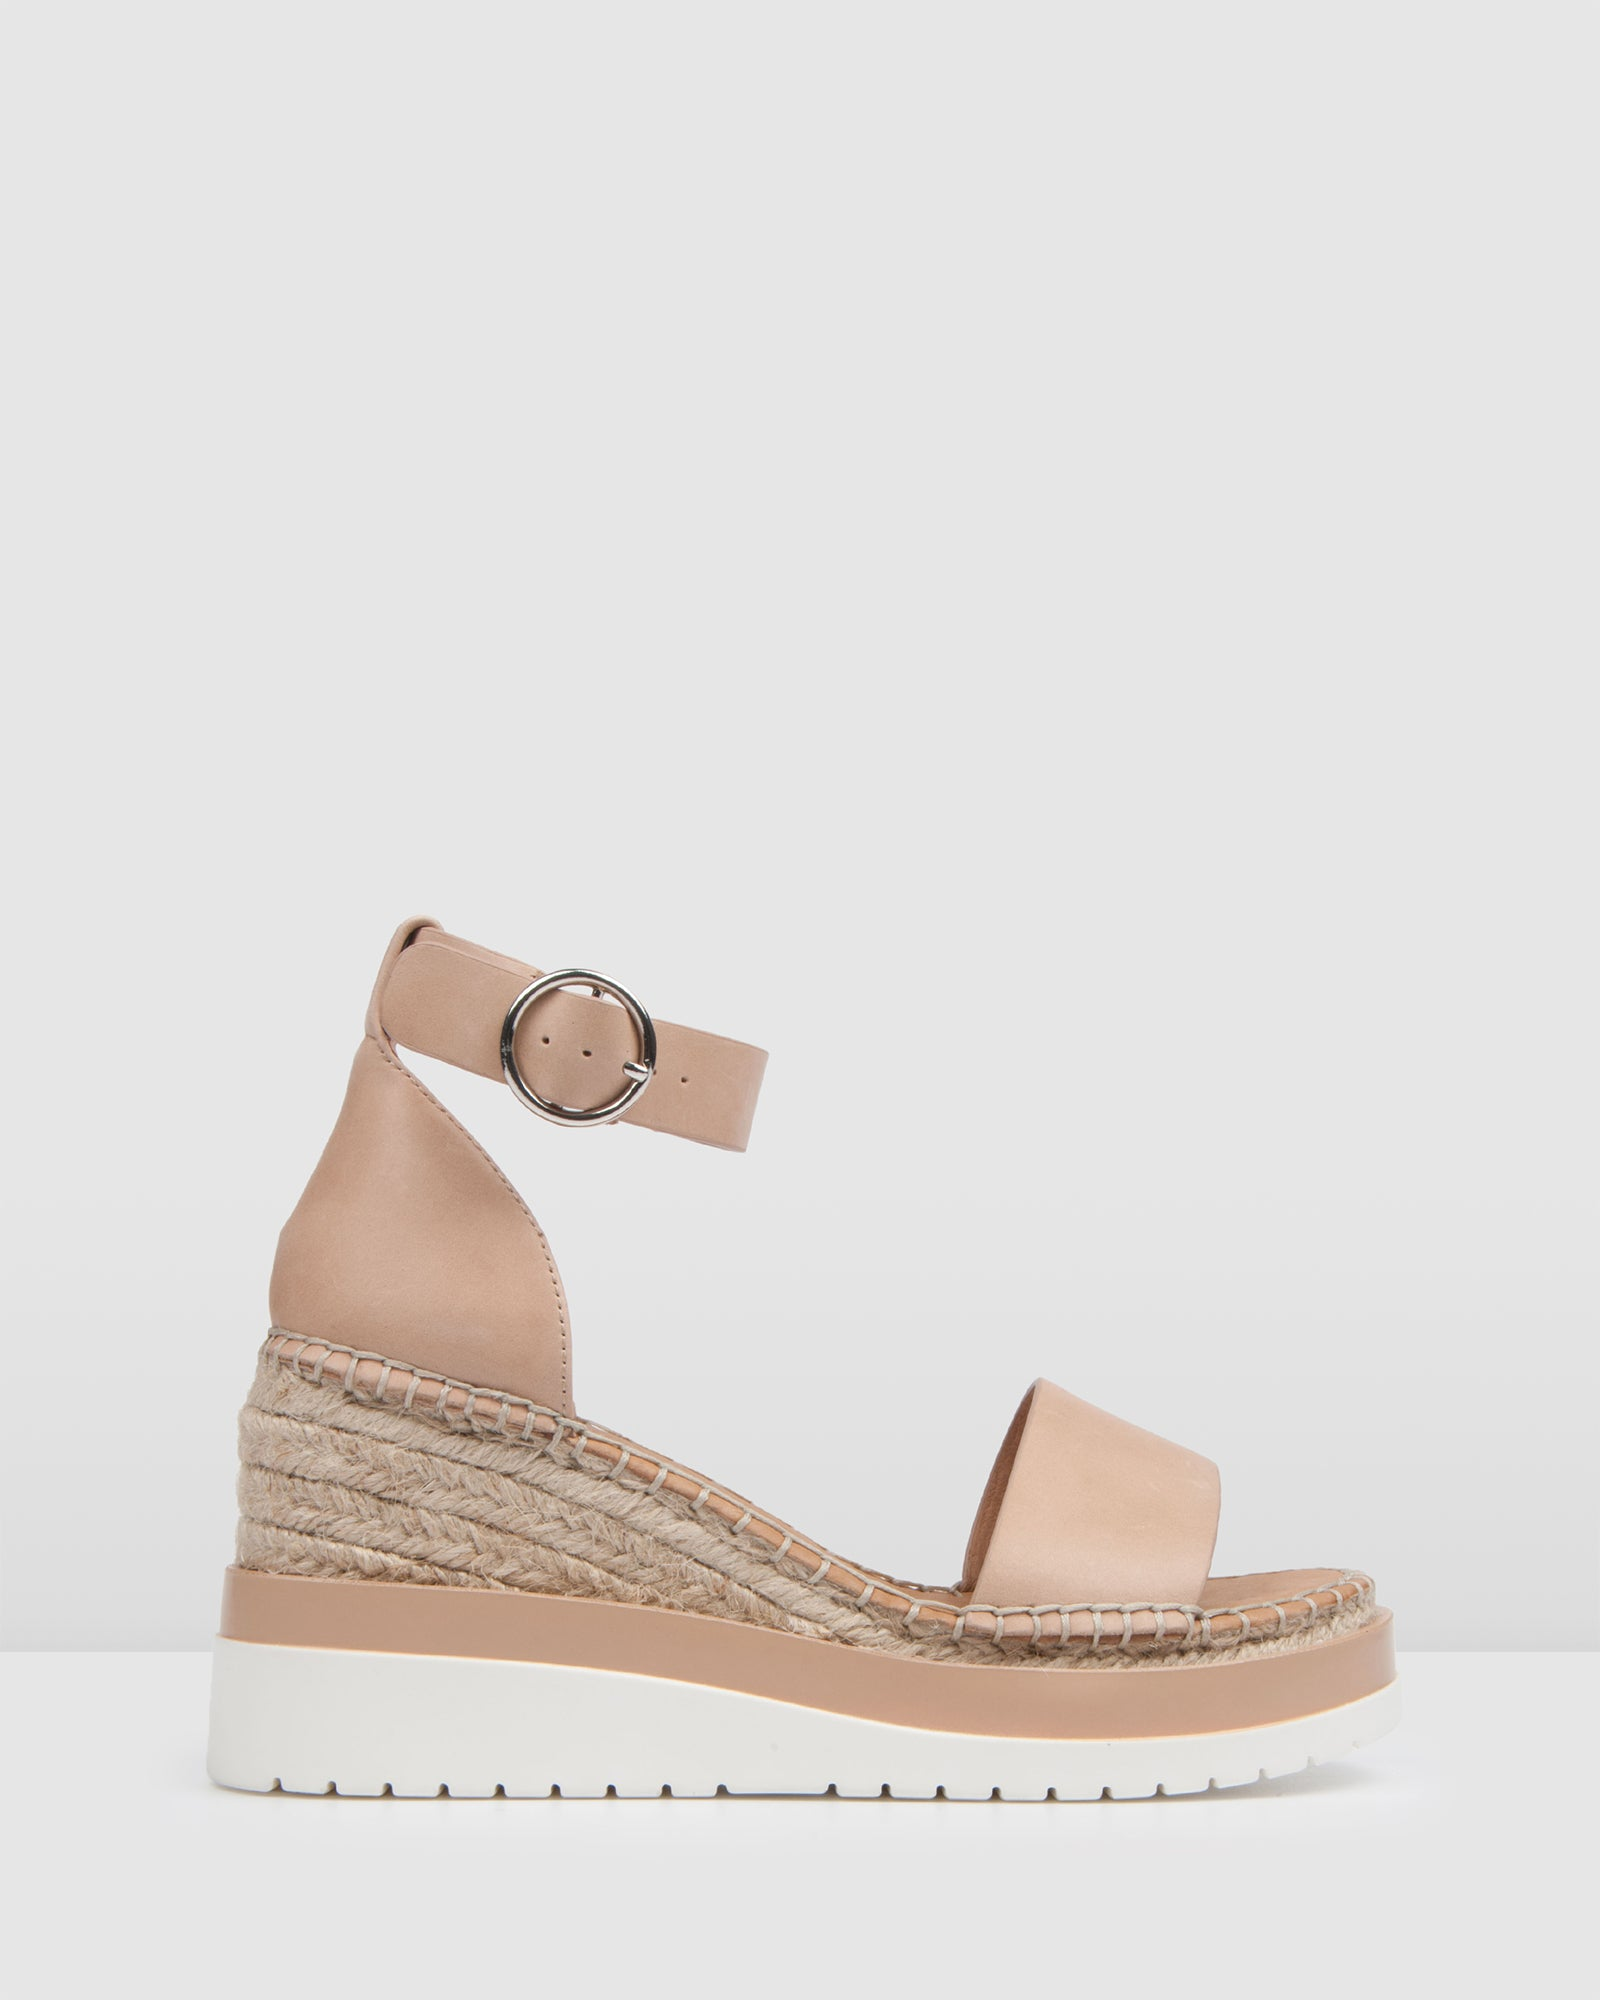 b188d746dba KLUME MID HEEL WEDGE ESPADRILLES NATURAL LEATHER